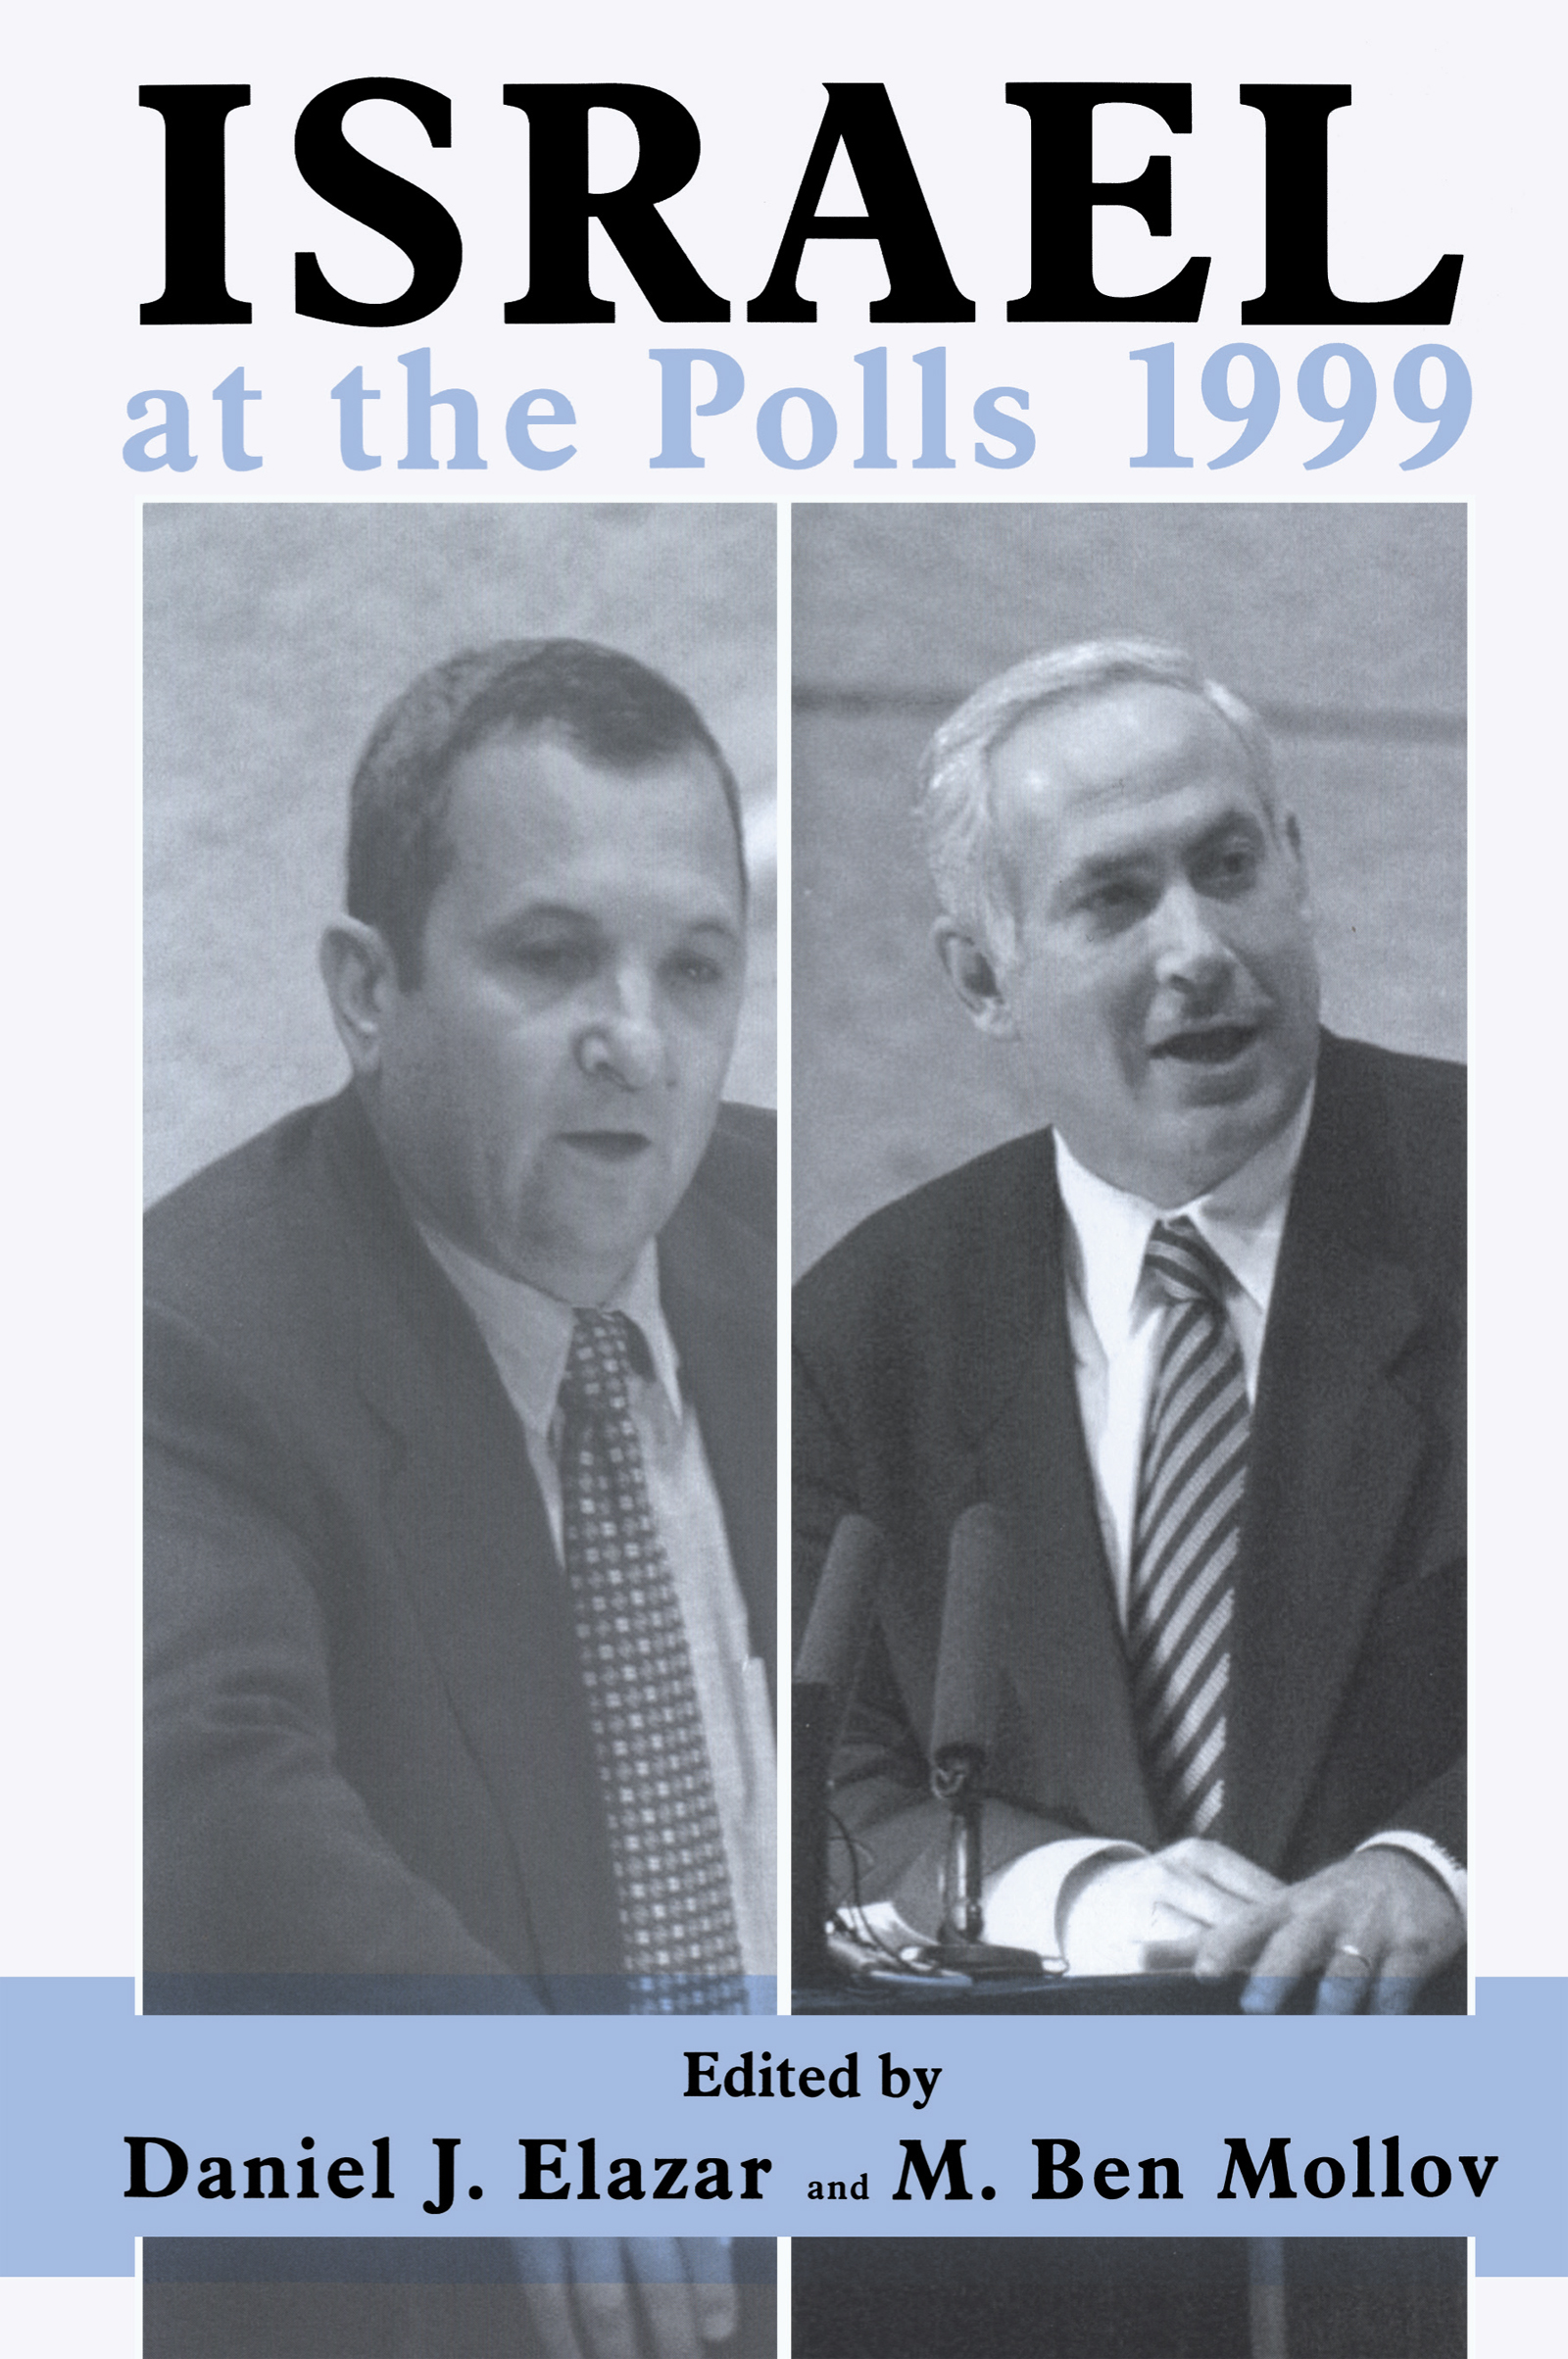 External Factors in Israel's 1999 Elections